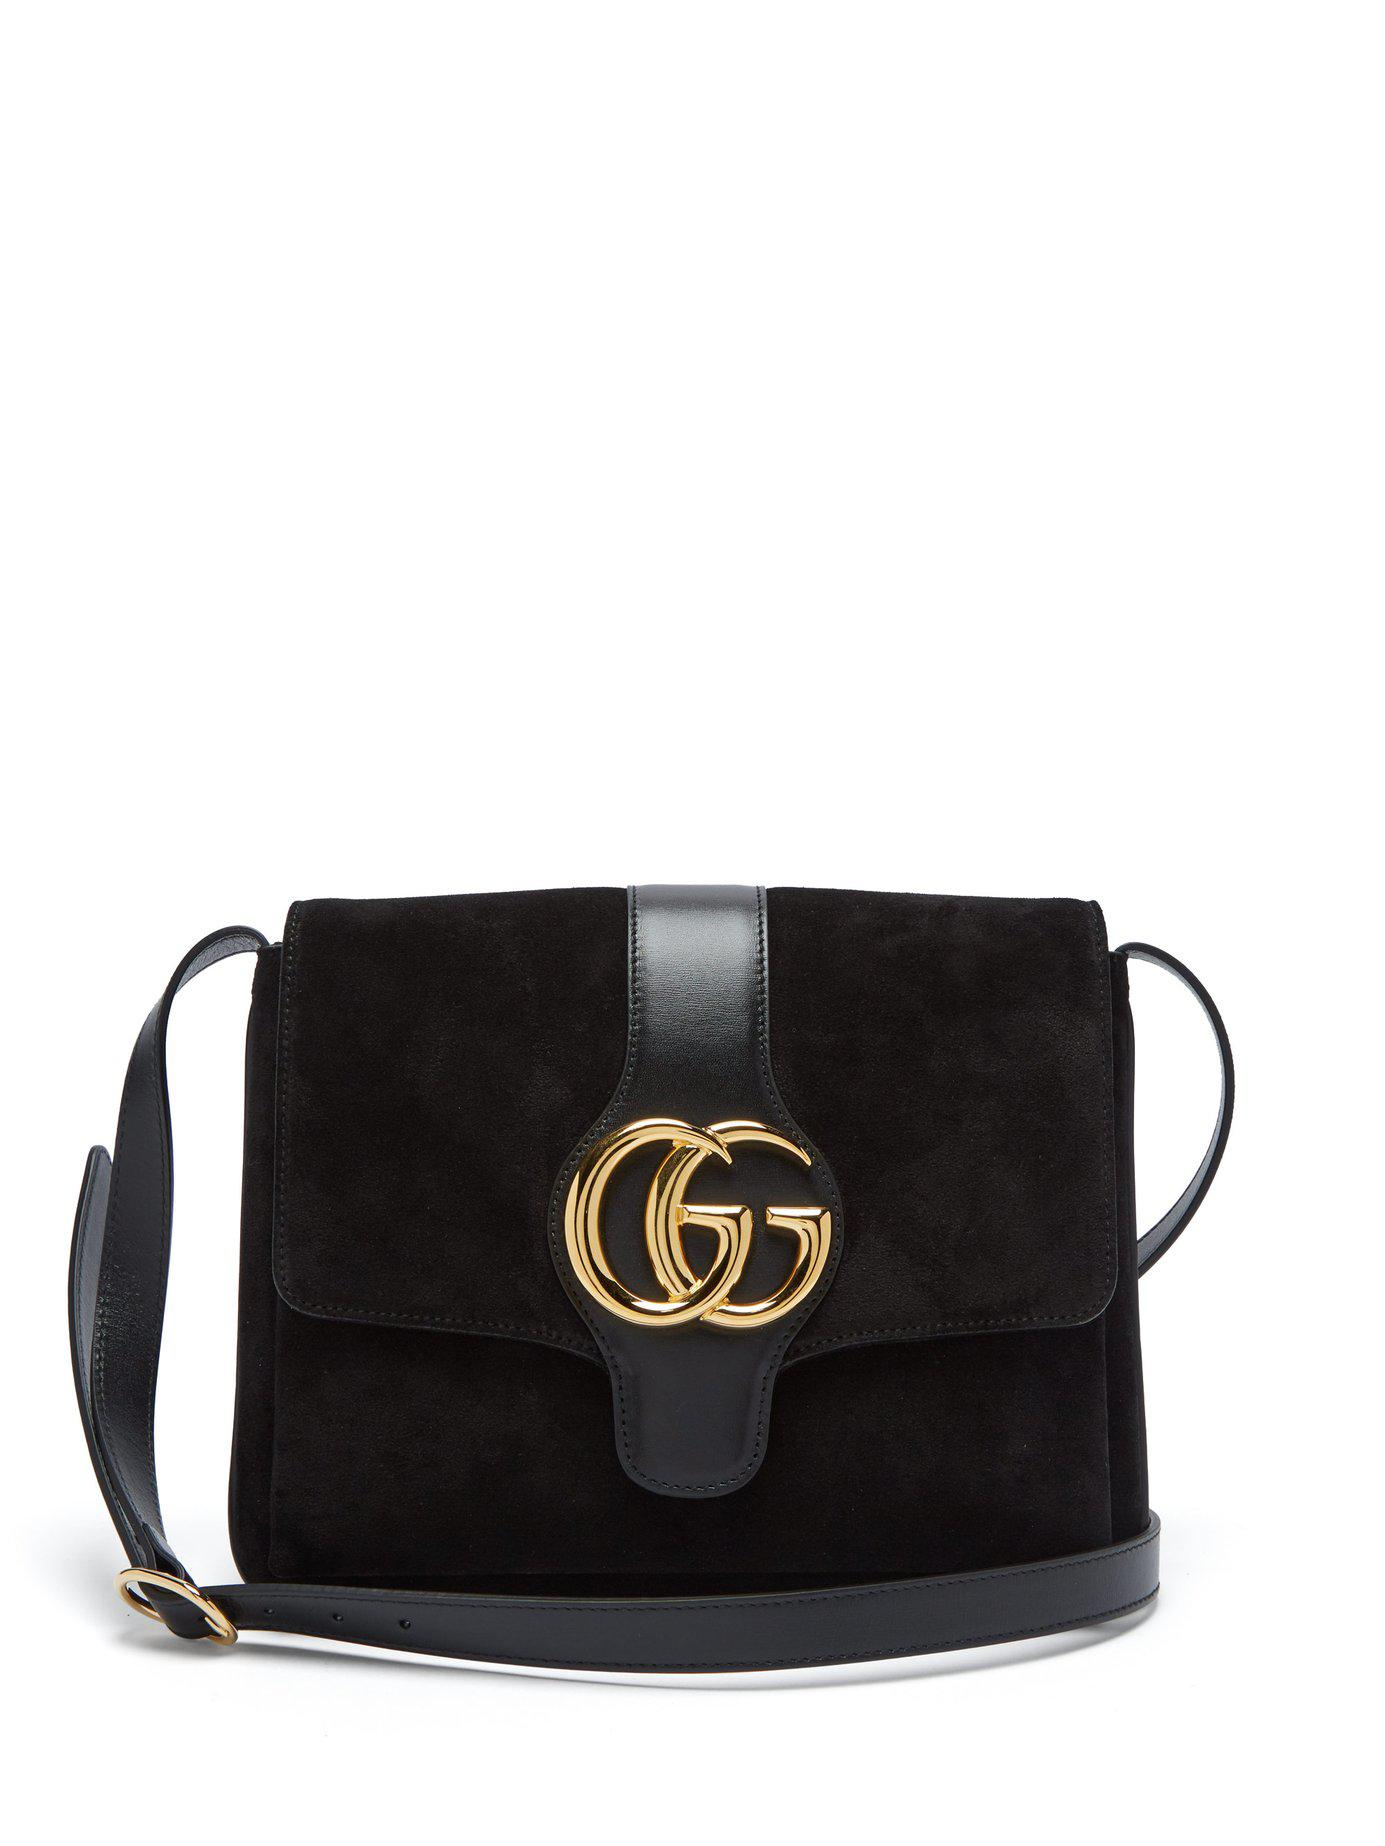 bfbe525c8a34d Lyst - Gucci Gg Arli Suede And Leather Cross Body Bag in Black